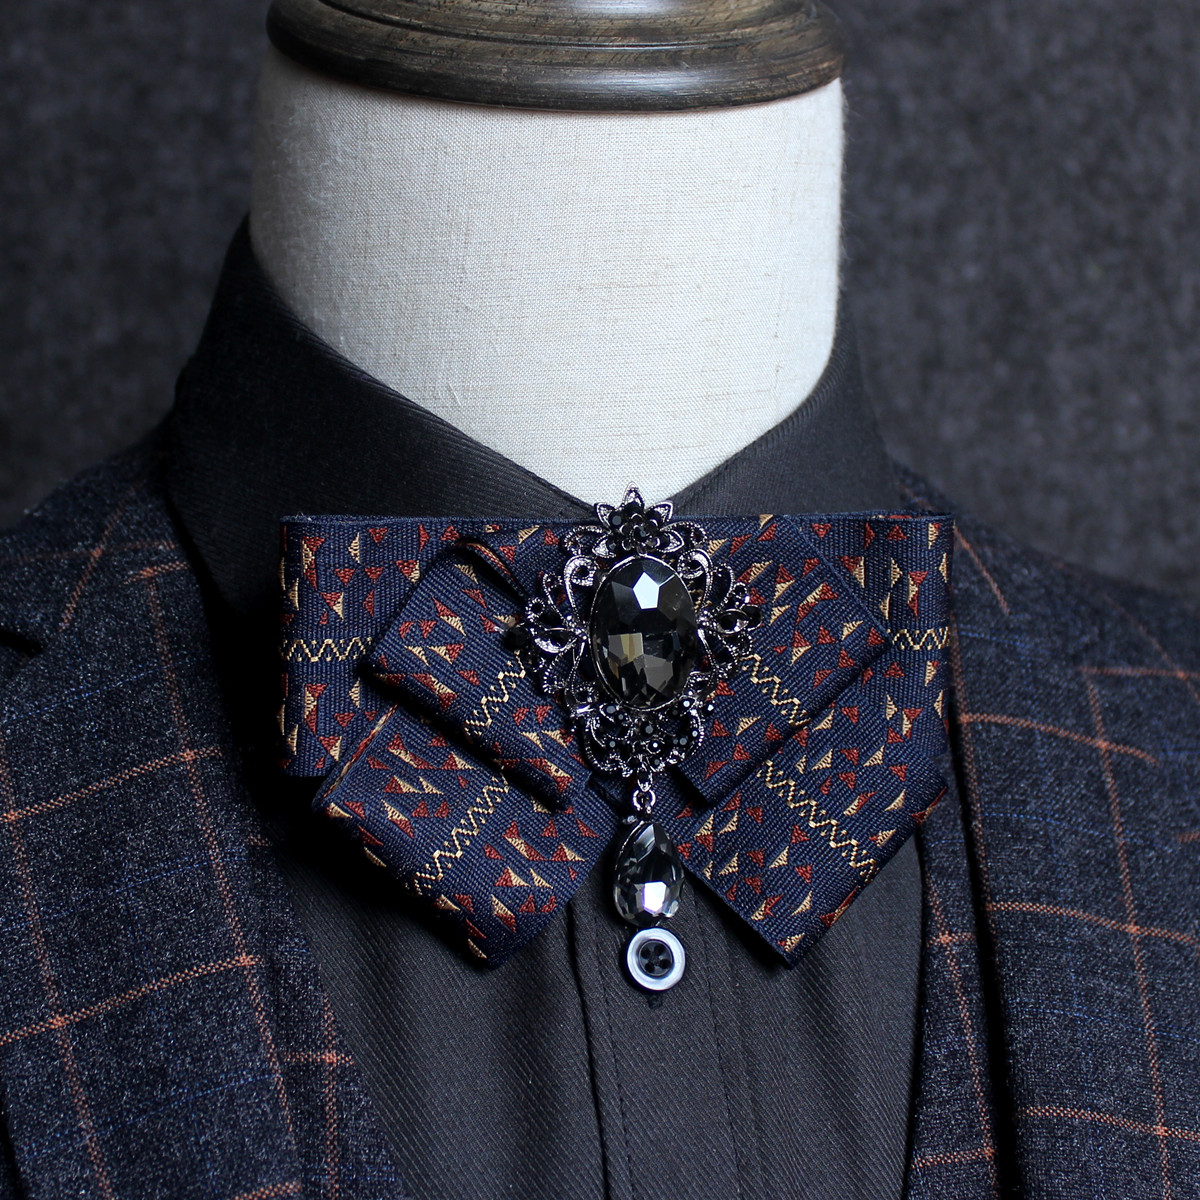 New men's suit shirt rhinestone bow tie High quality fashion men accessories bow tie